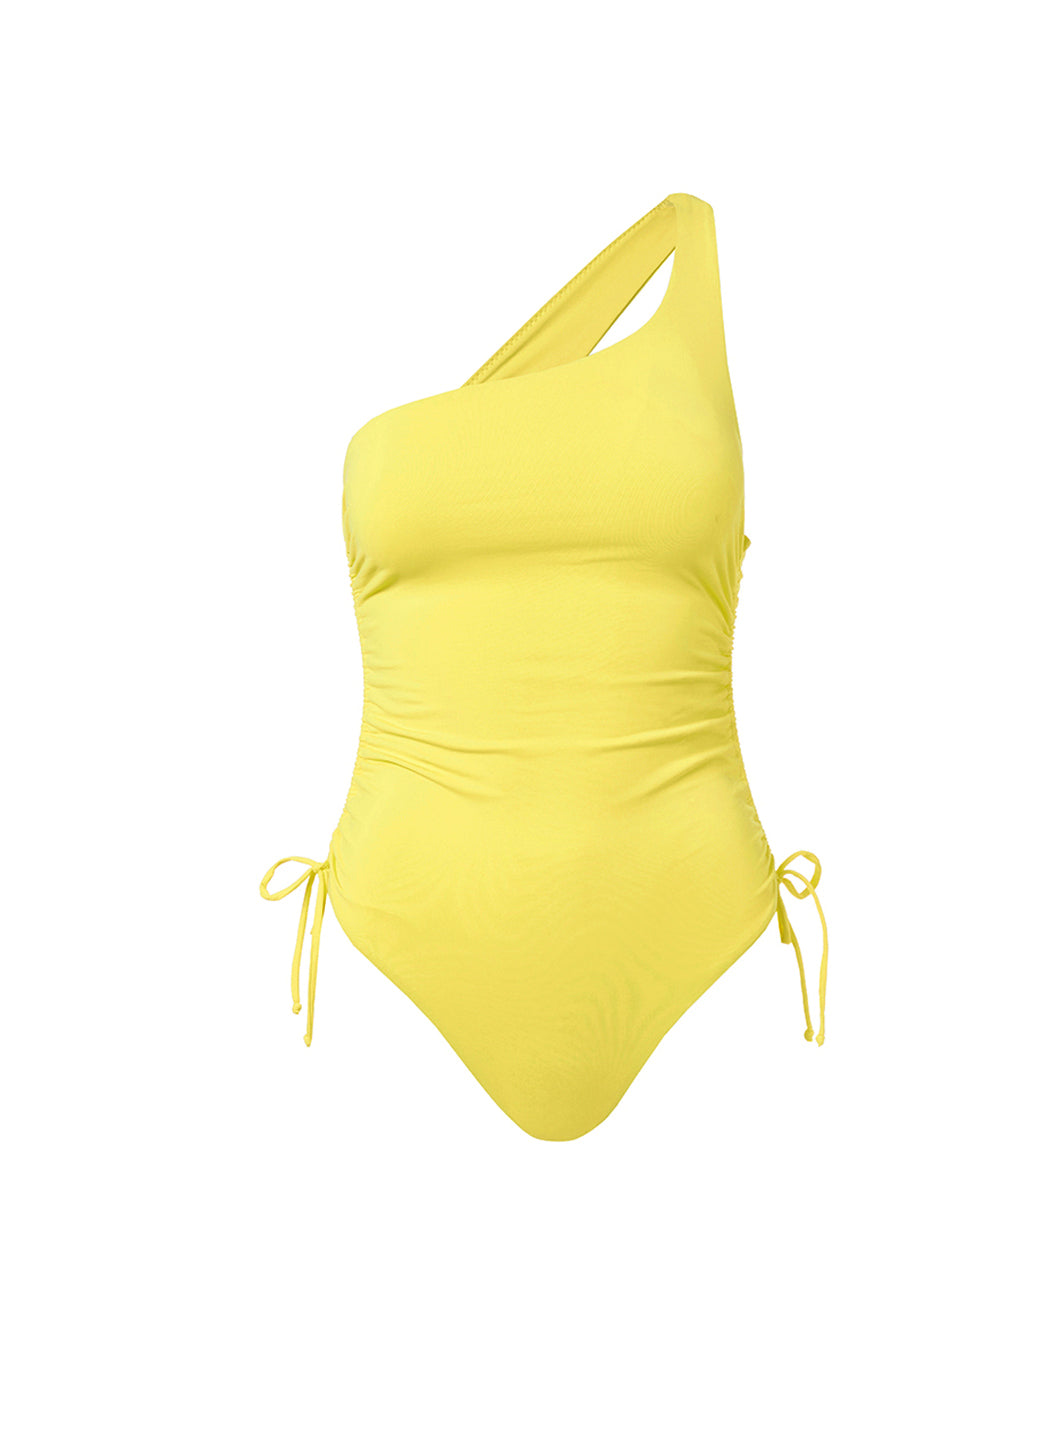 Polynesia Yellow One Shoulder Ruched Swimsuit - Melissa Odabash Yellow Swimsuits